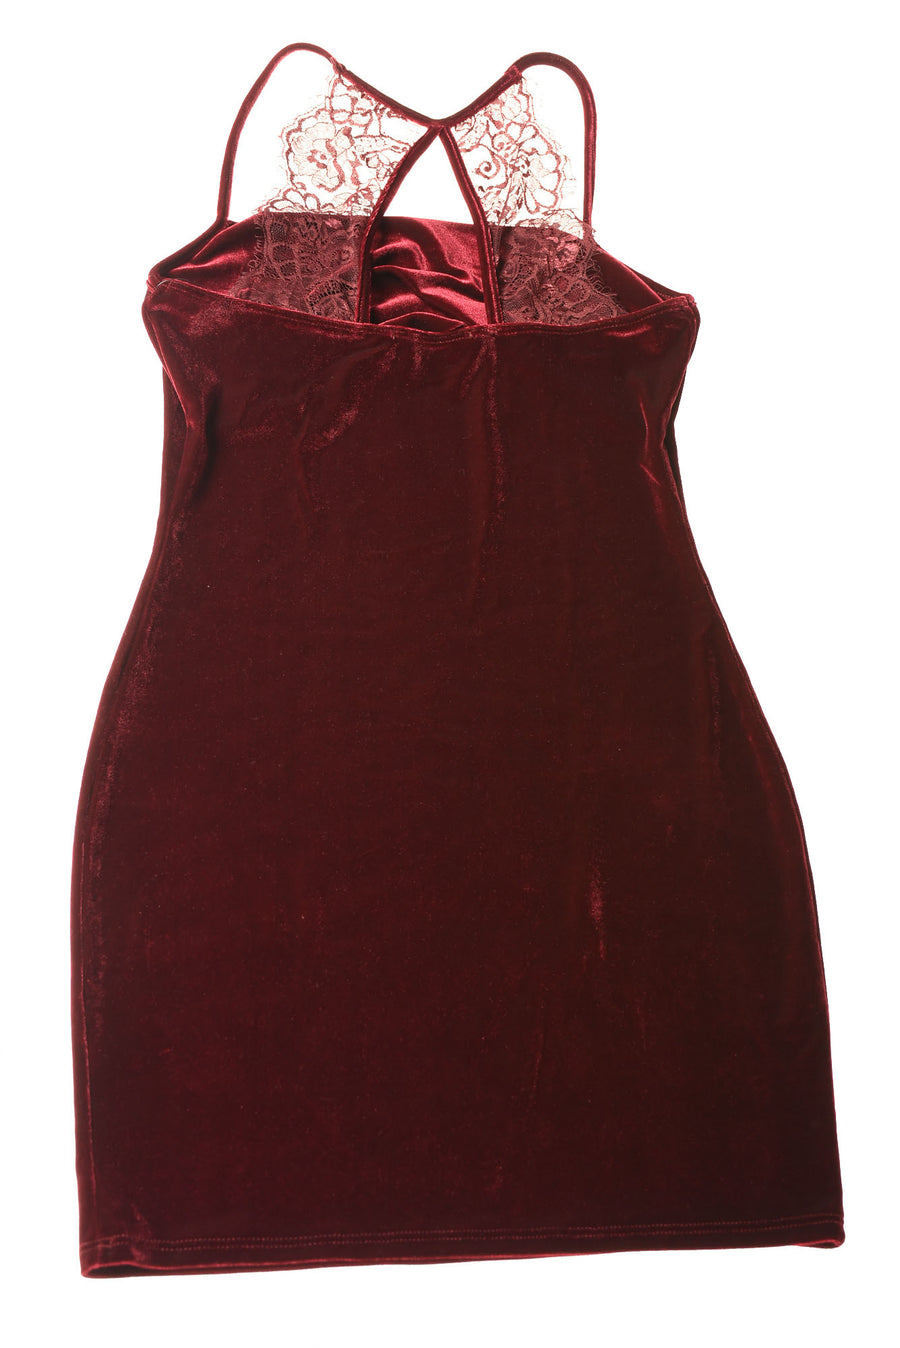 NEW Lulu's Women's Dress Large Burgundy